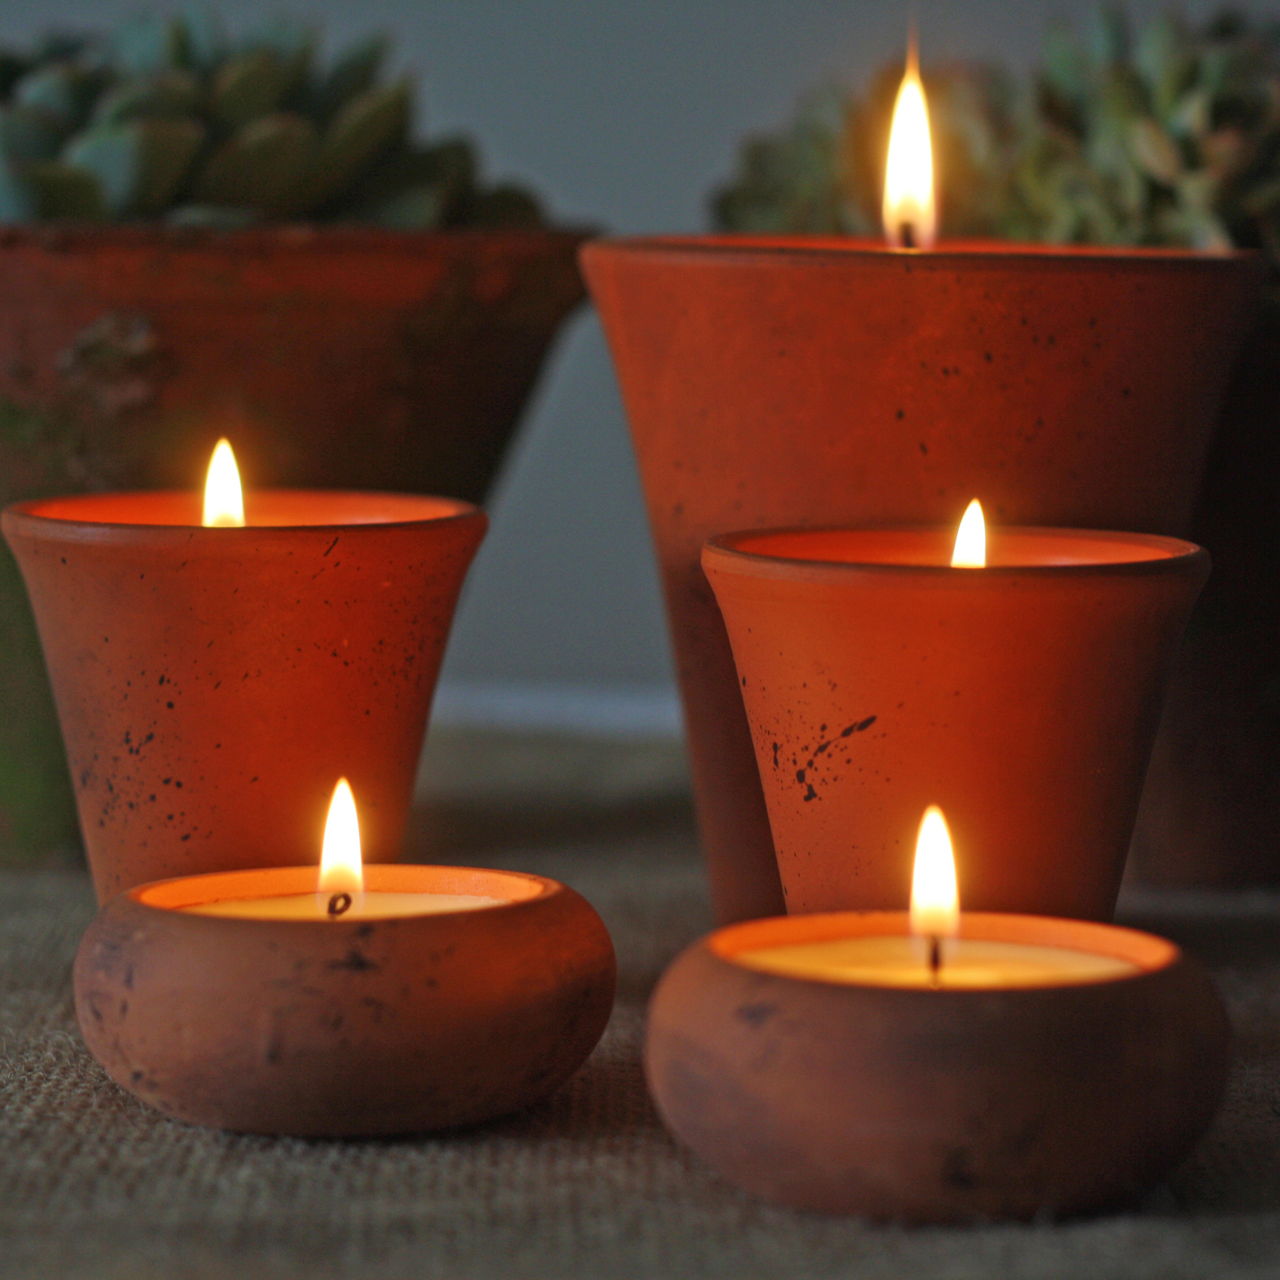 terracotta pots with candles